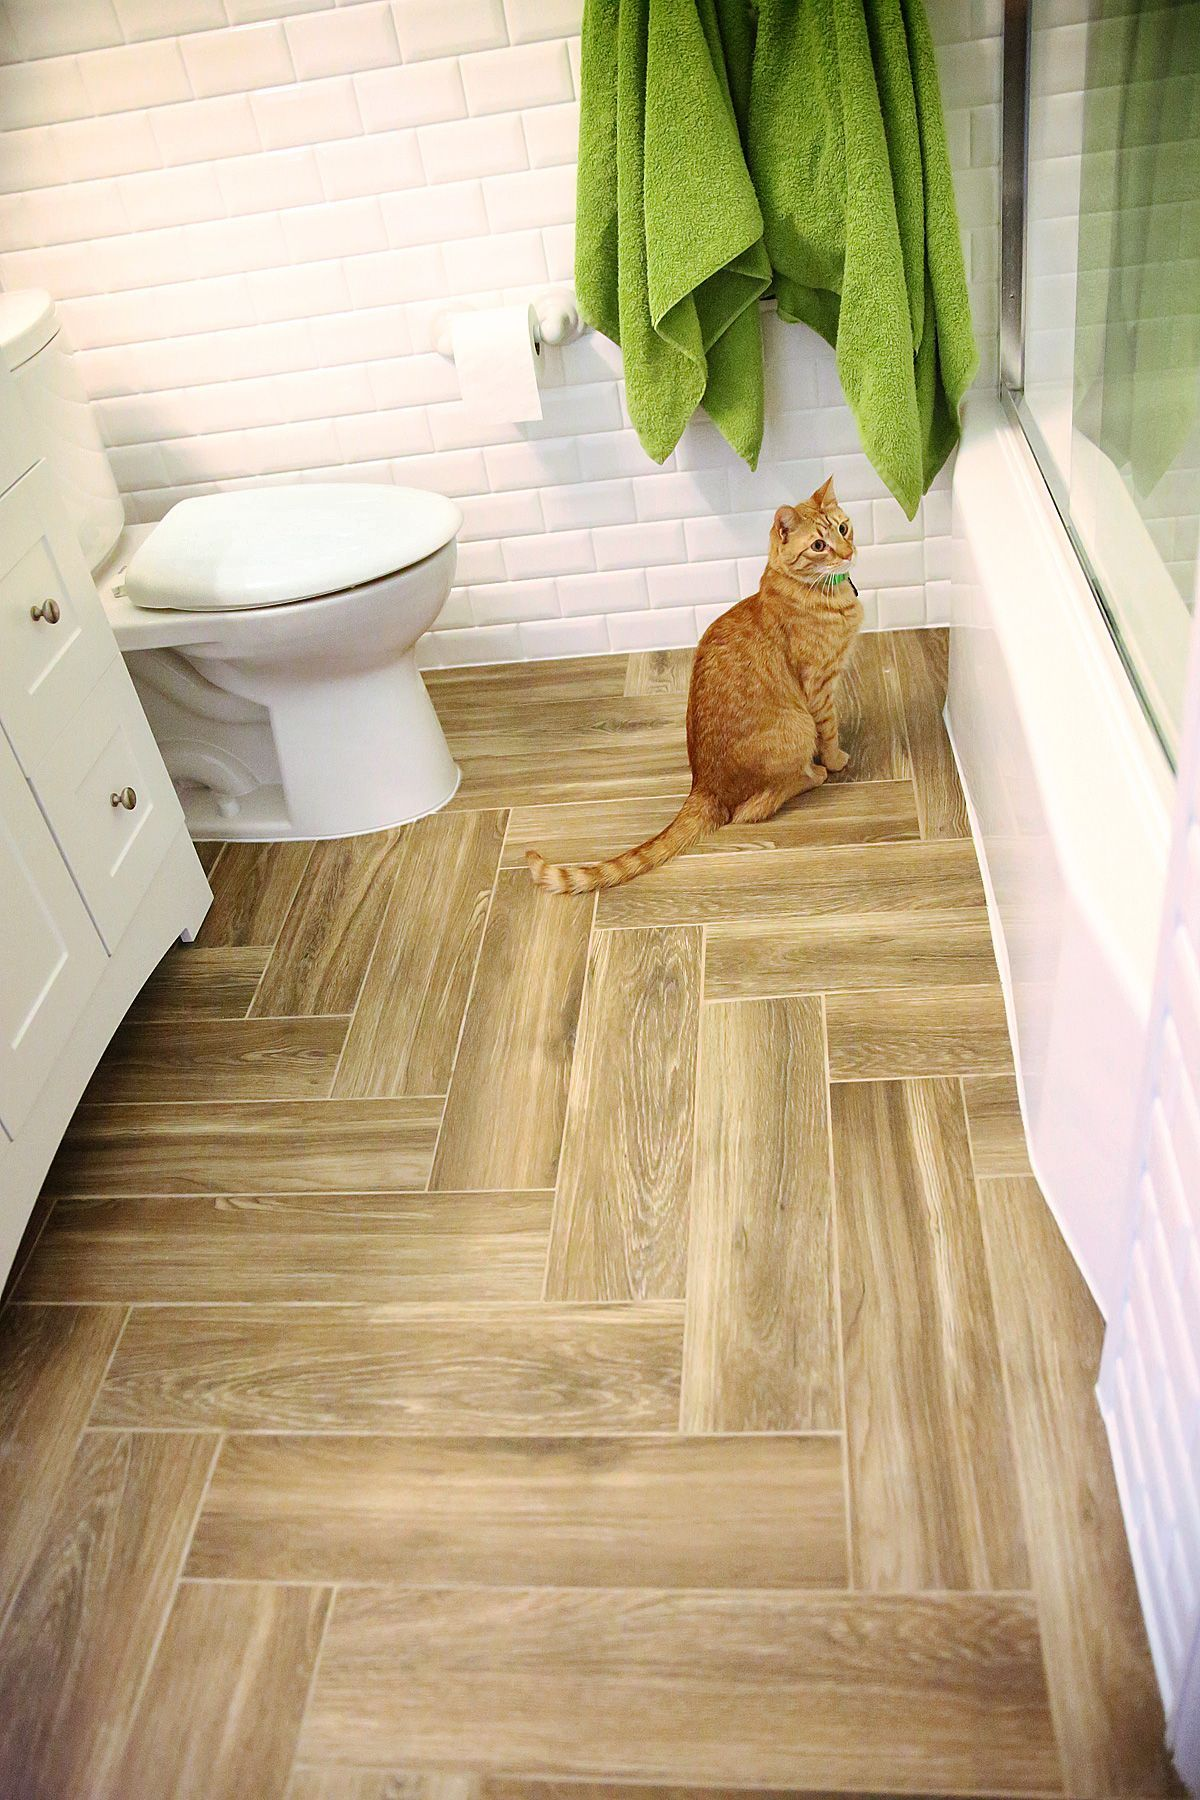 Herringbone Porcelain Plank Small Bathroom Floor Use In Vertical Staggered Rows Not Herringbone Love Color Flooring Herringbone Tile Floors Tile Floor